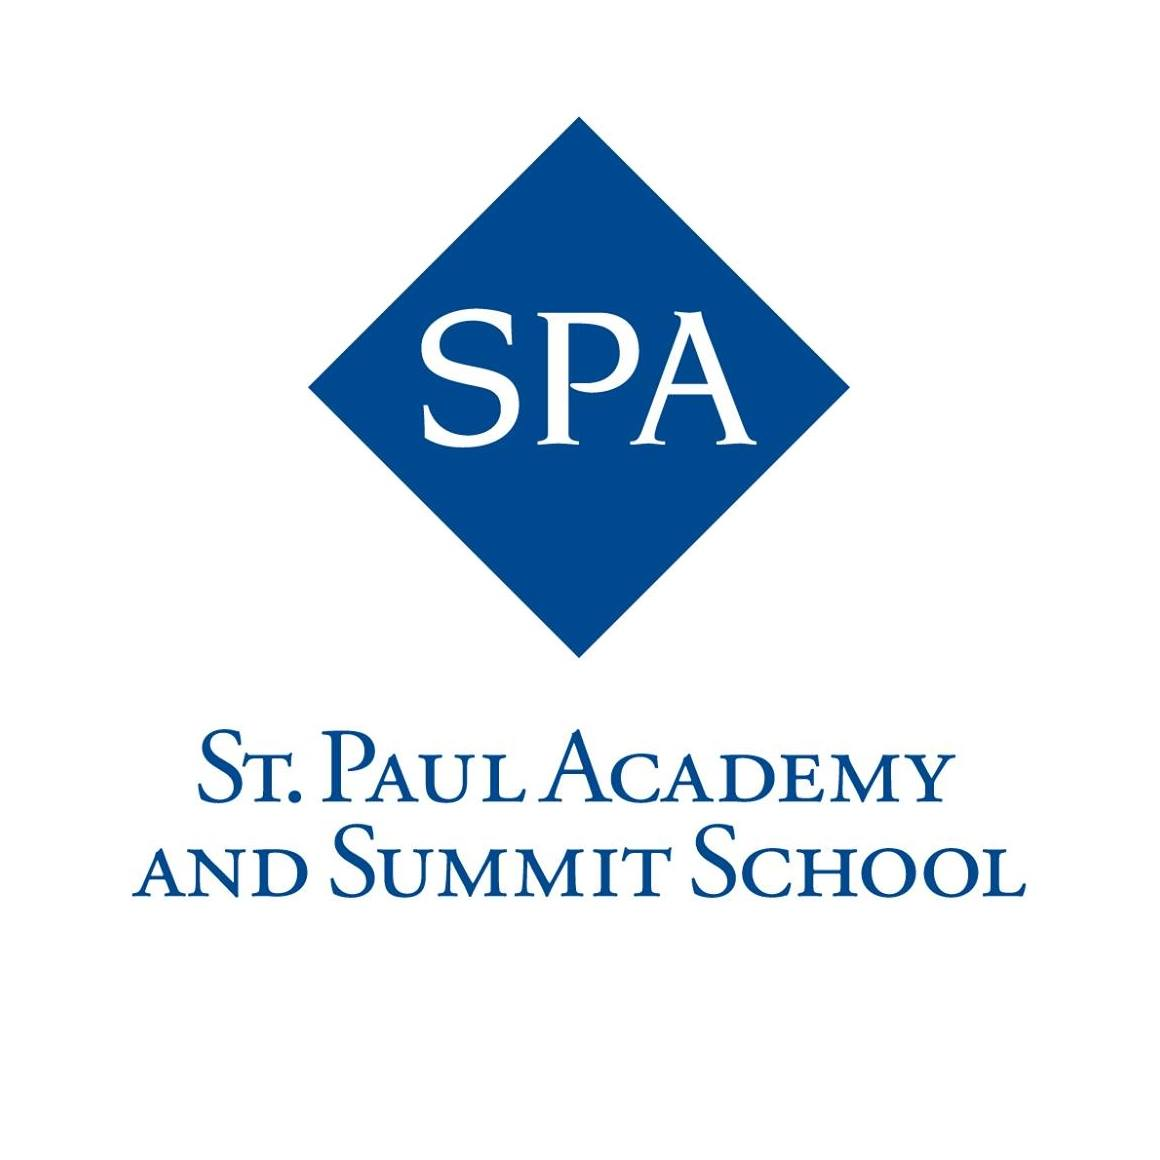 St. Paul Academy & Summit School